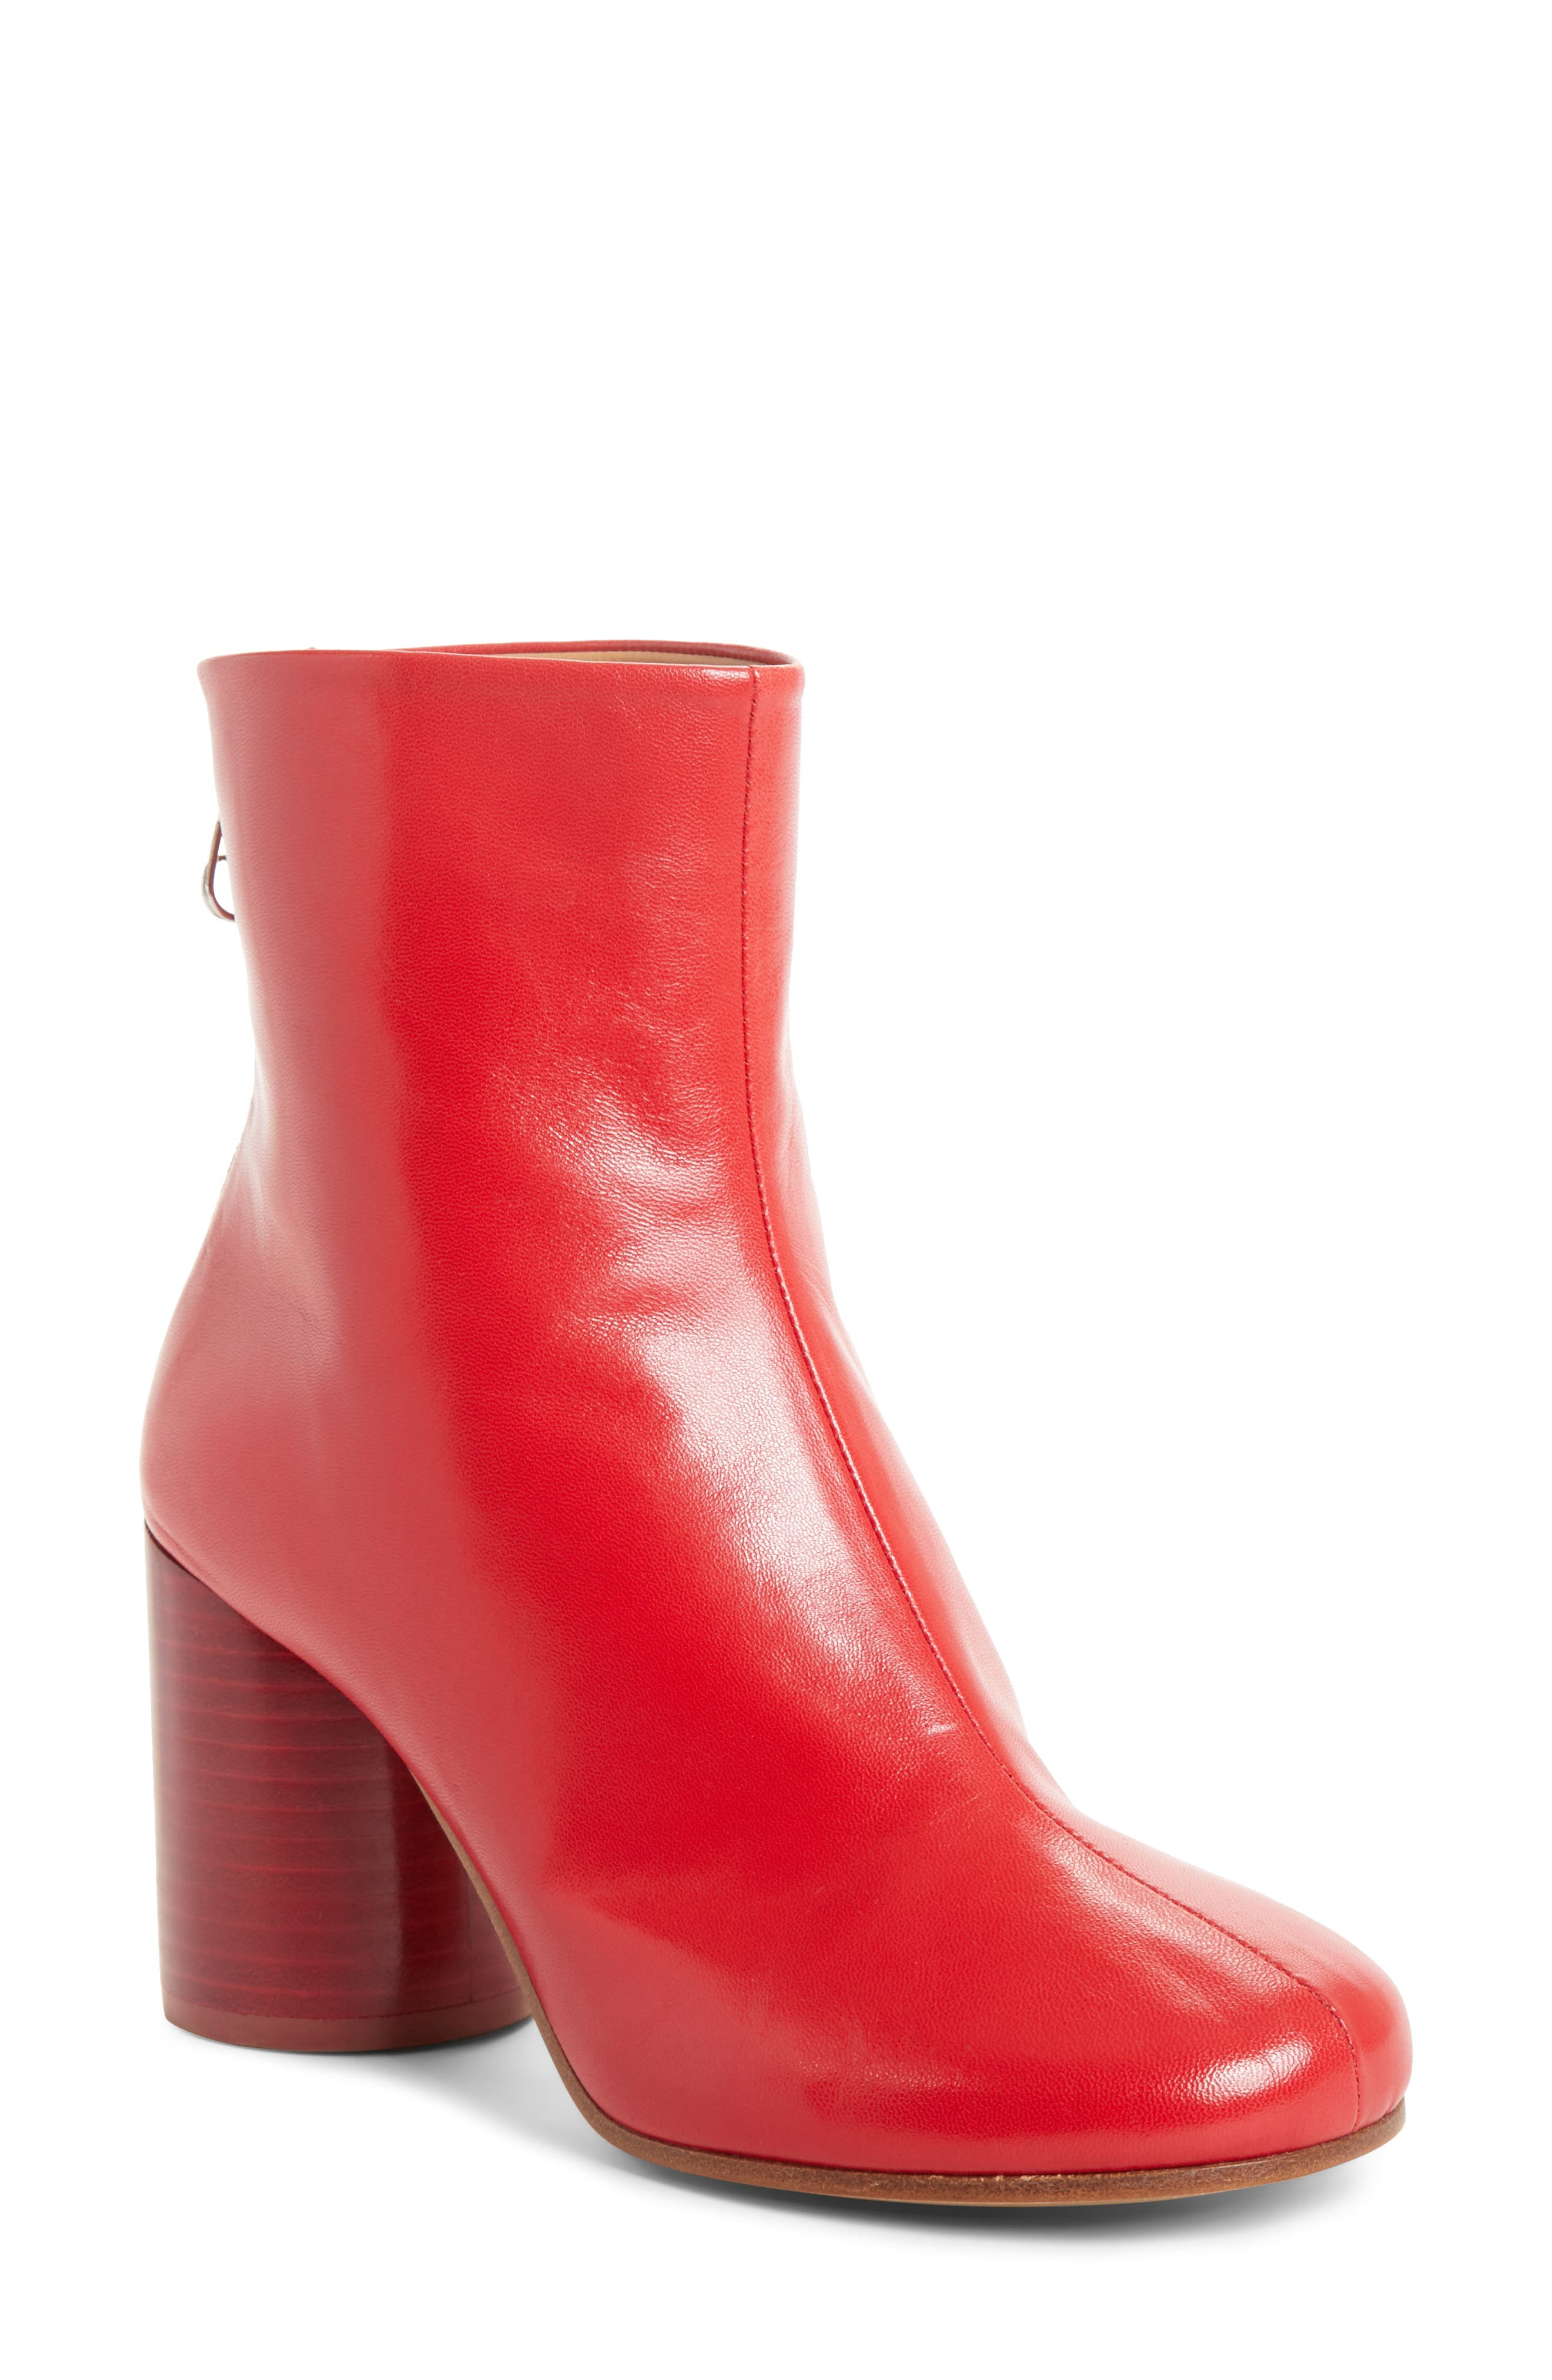 Round Heel Ankle Boot,                         Main,                         color, Red